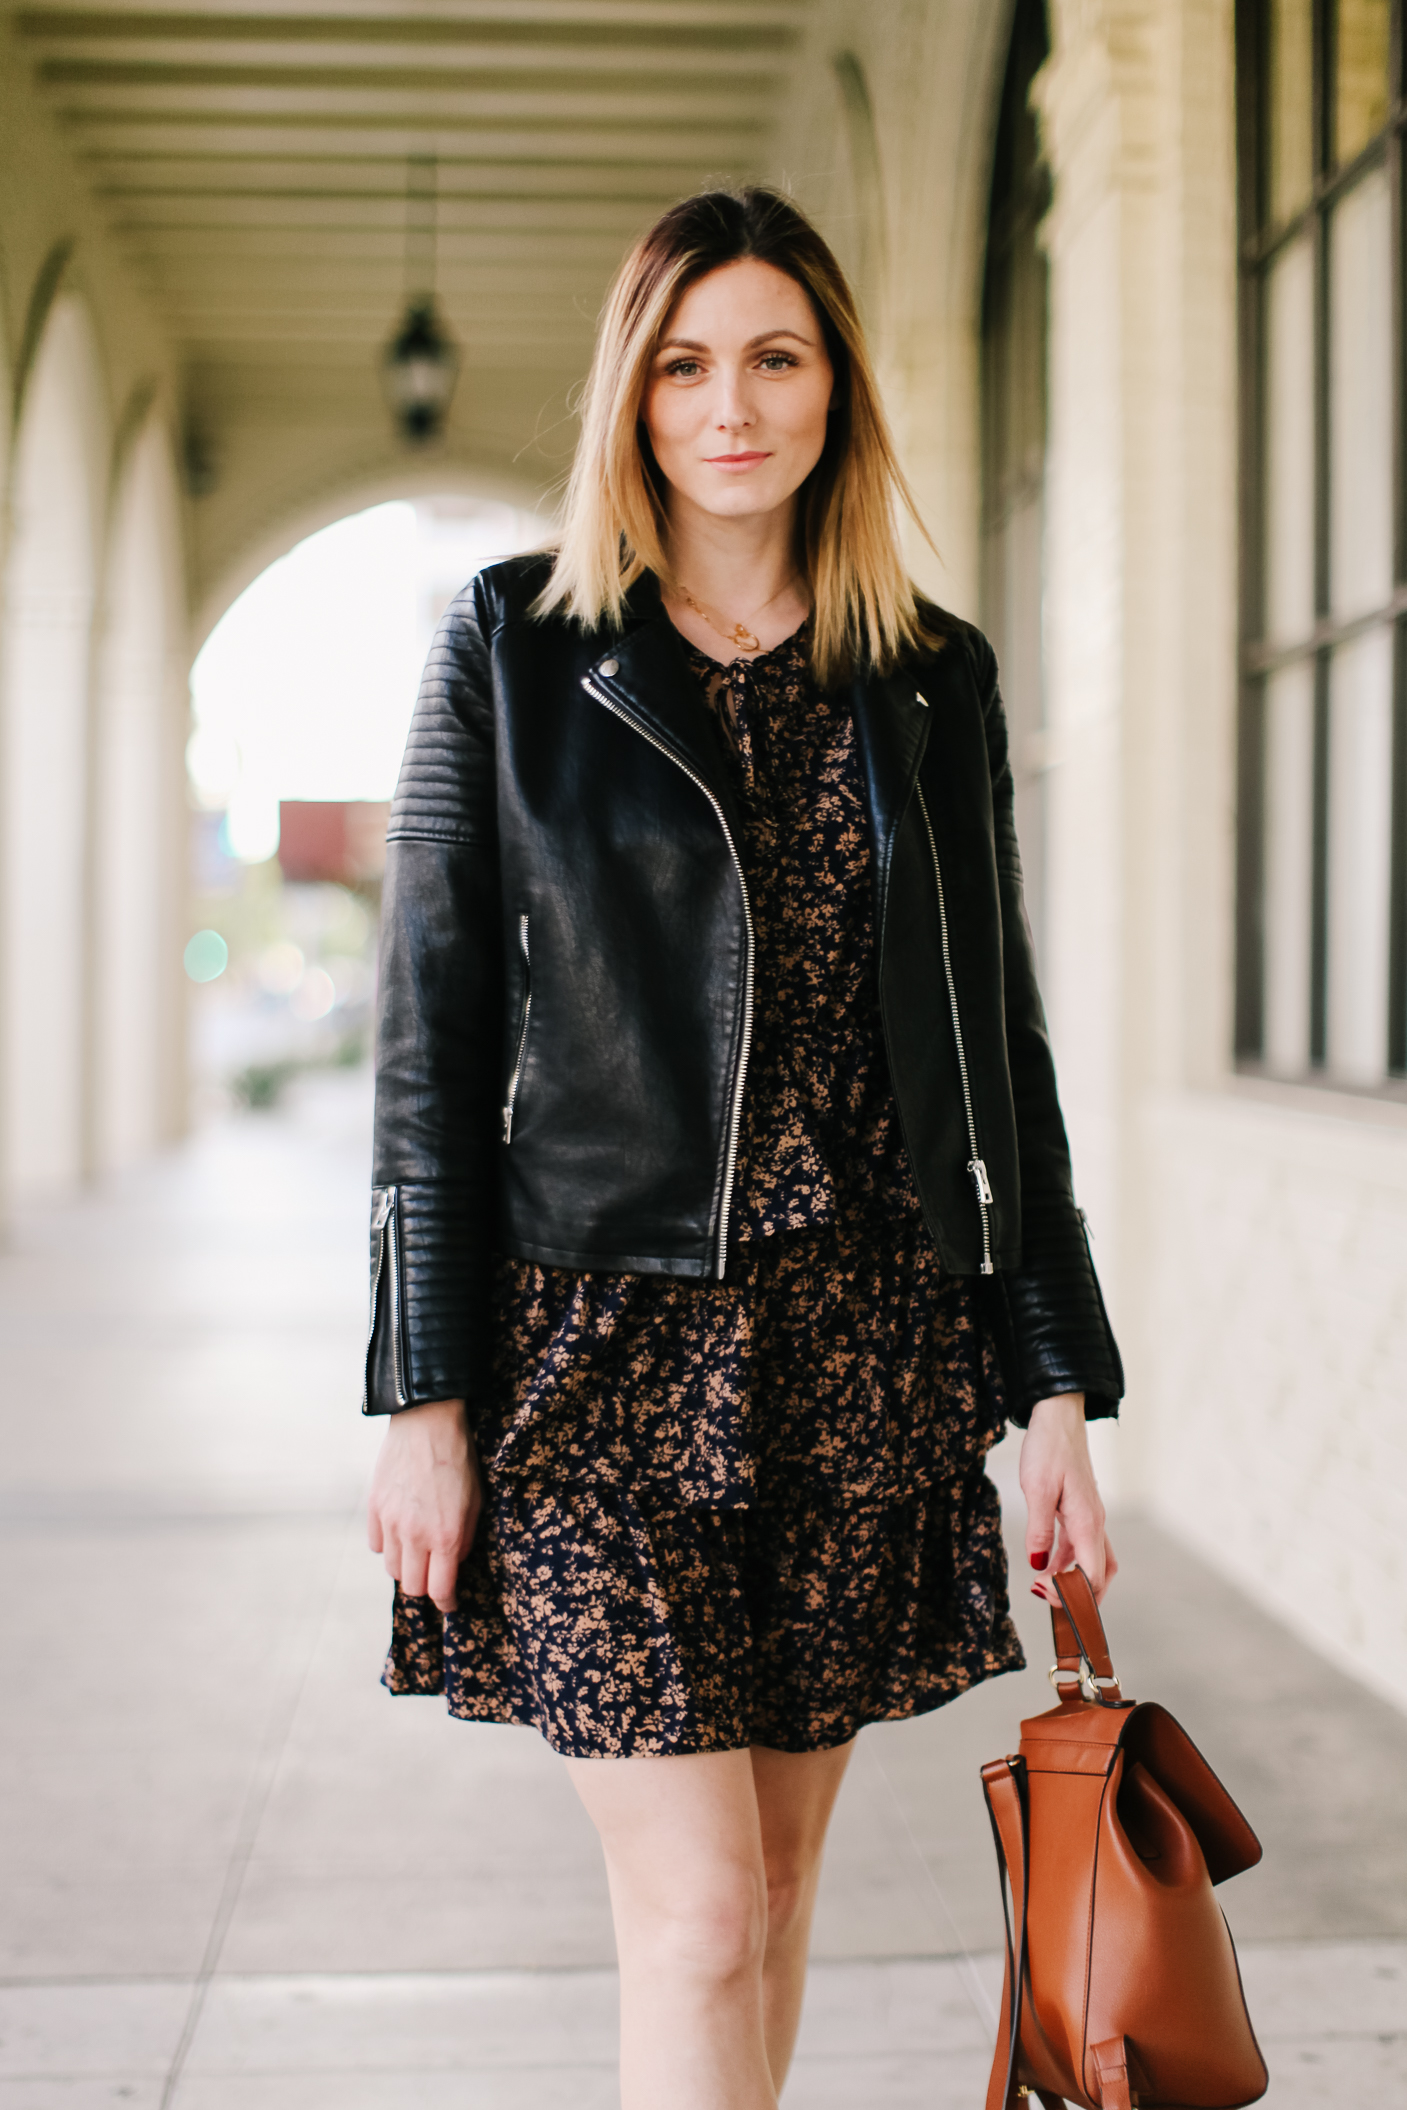 Floral Ruffle dress and faux leather jacket | Floral Ruffle Dress by popular LA fashion blog, Tea Cups and Tulips: image of a woman wearing a SheIn Ditsy Floral Layered Ruffle Hem A-line Dress, leather jacket, and Dr Martens Vegan 101 6 eye boots in black.